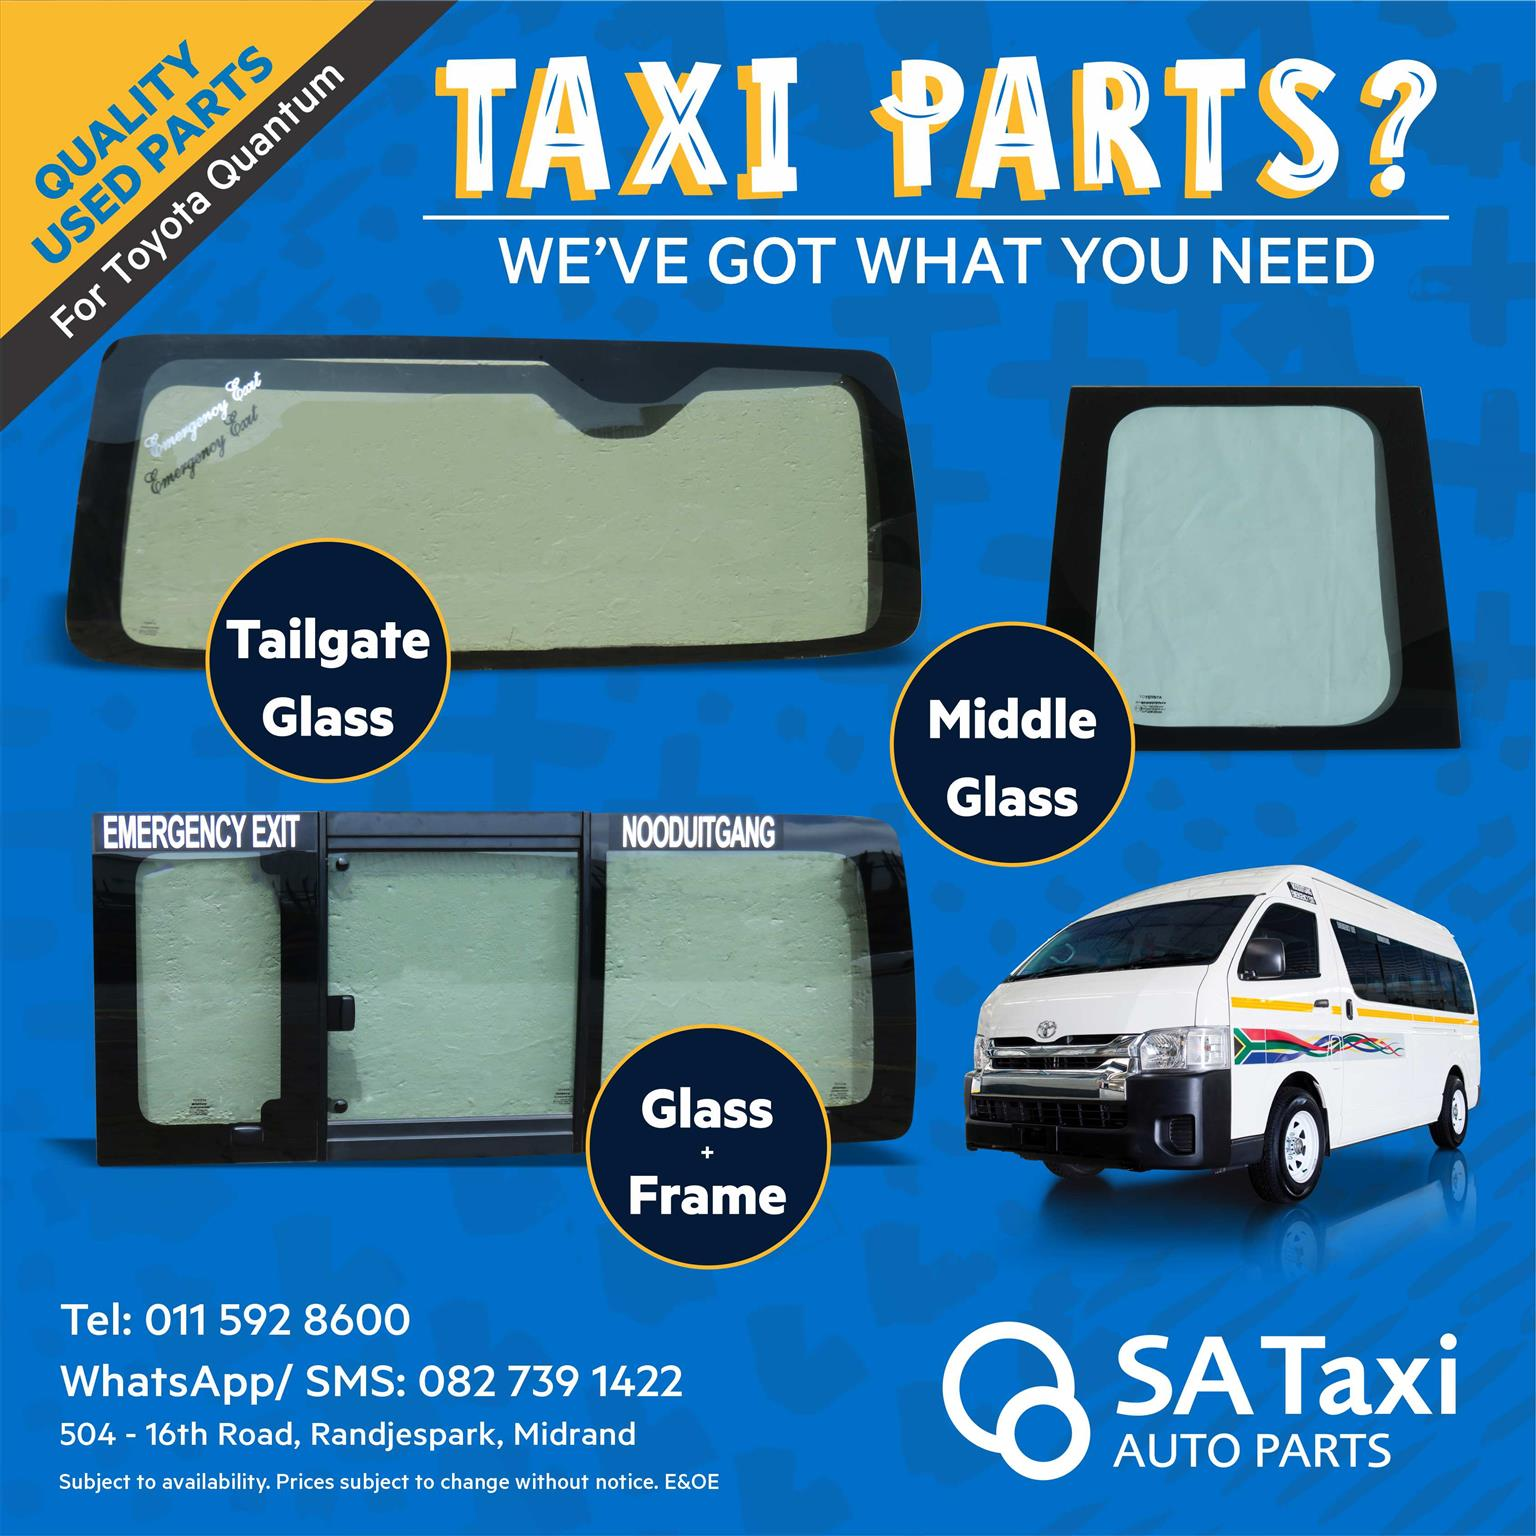 Quality used TAILGATE GLASS for Toyota Quantum - SA Taxi Auto Parts quality spares